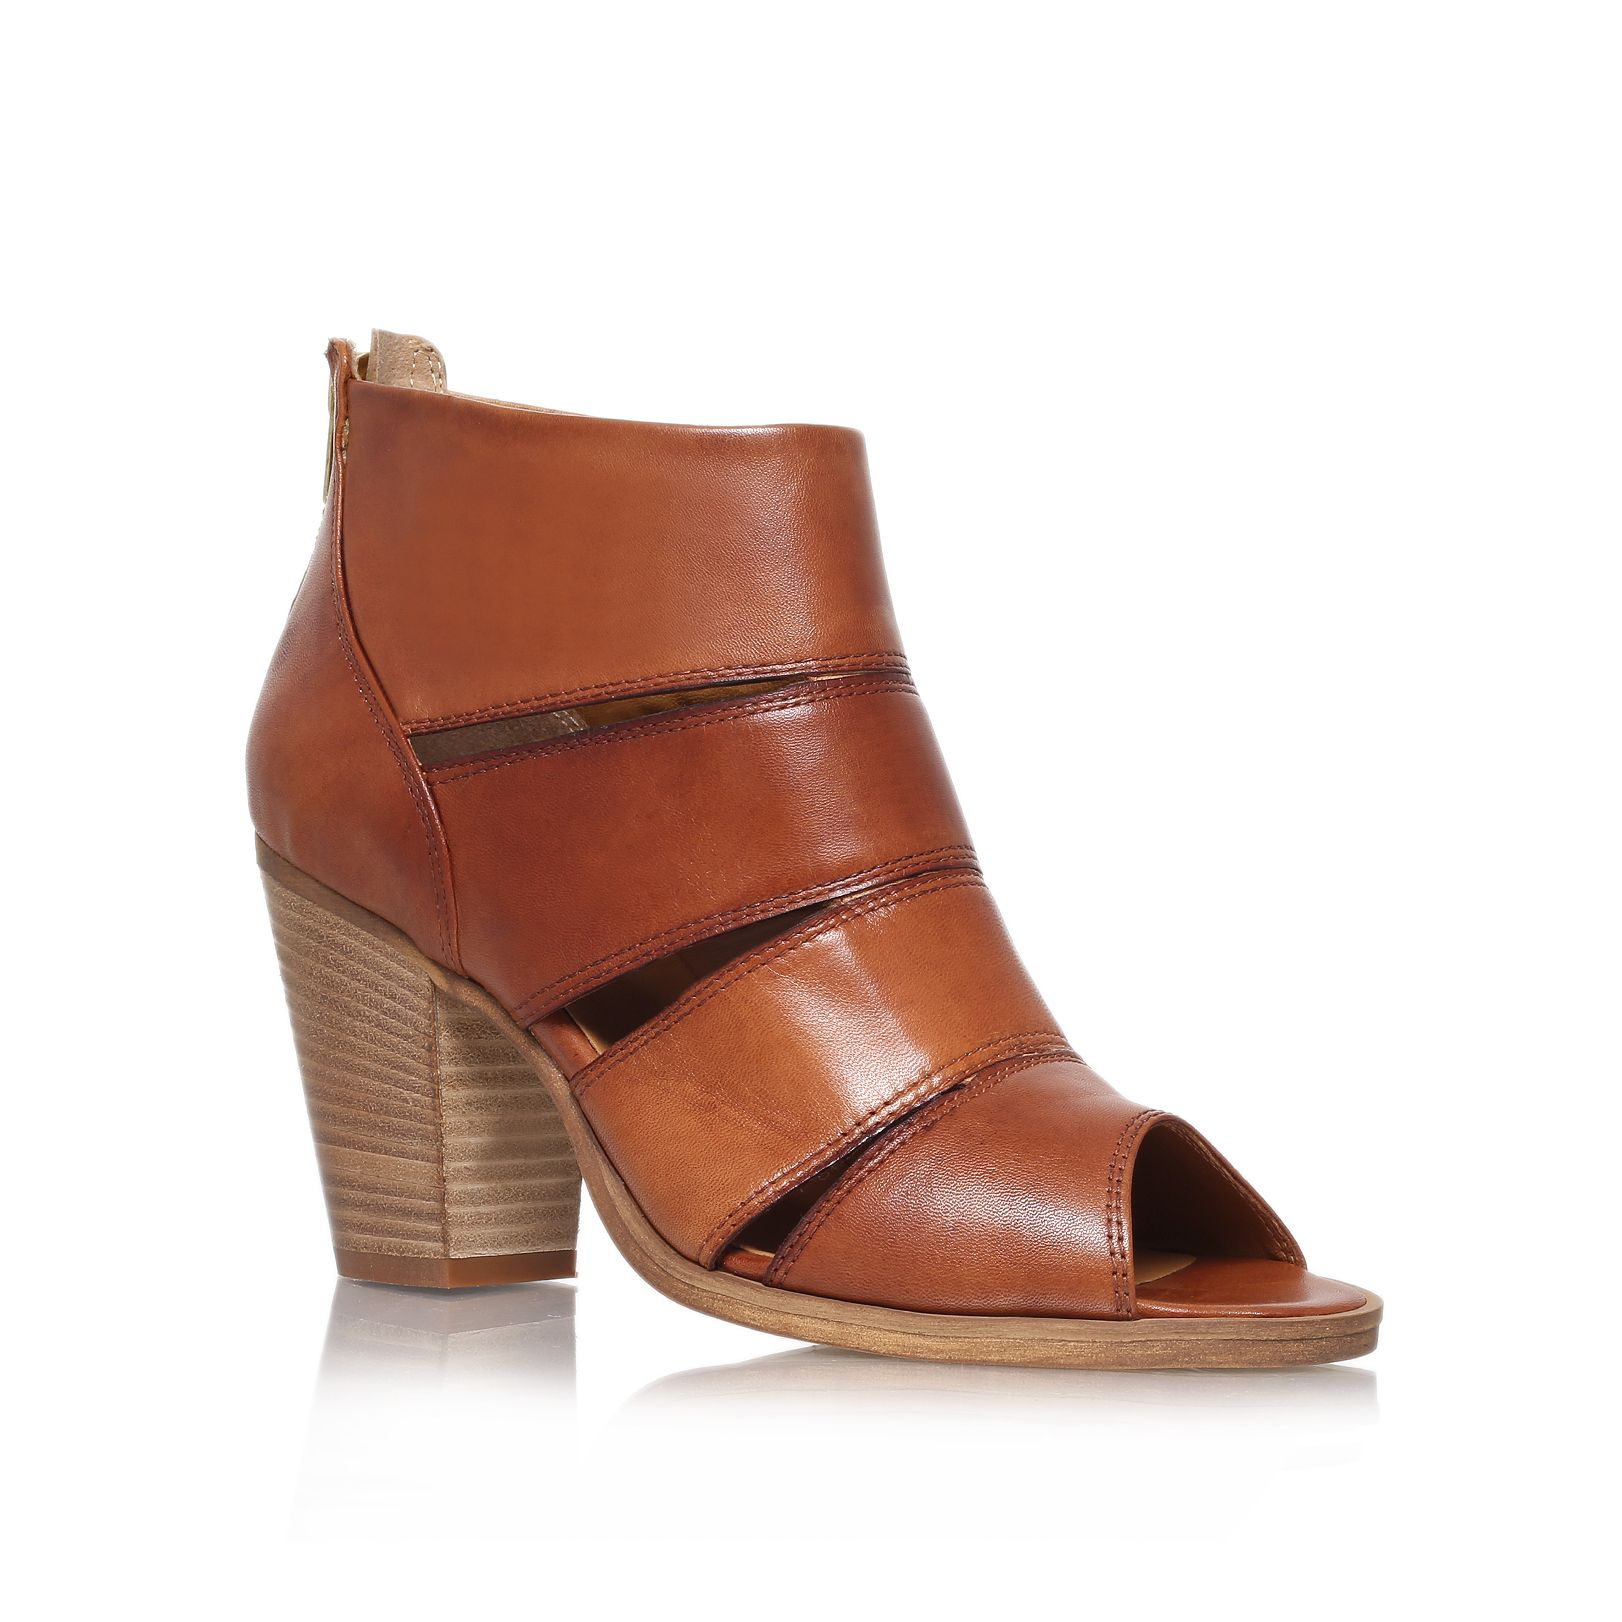 Kiwi high heel ankle boots